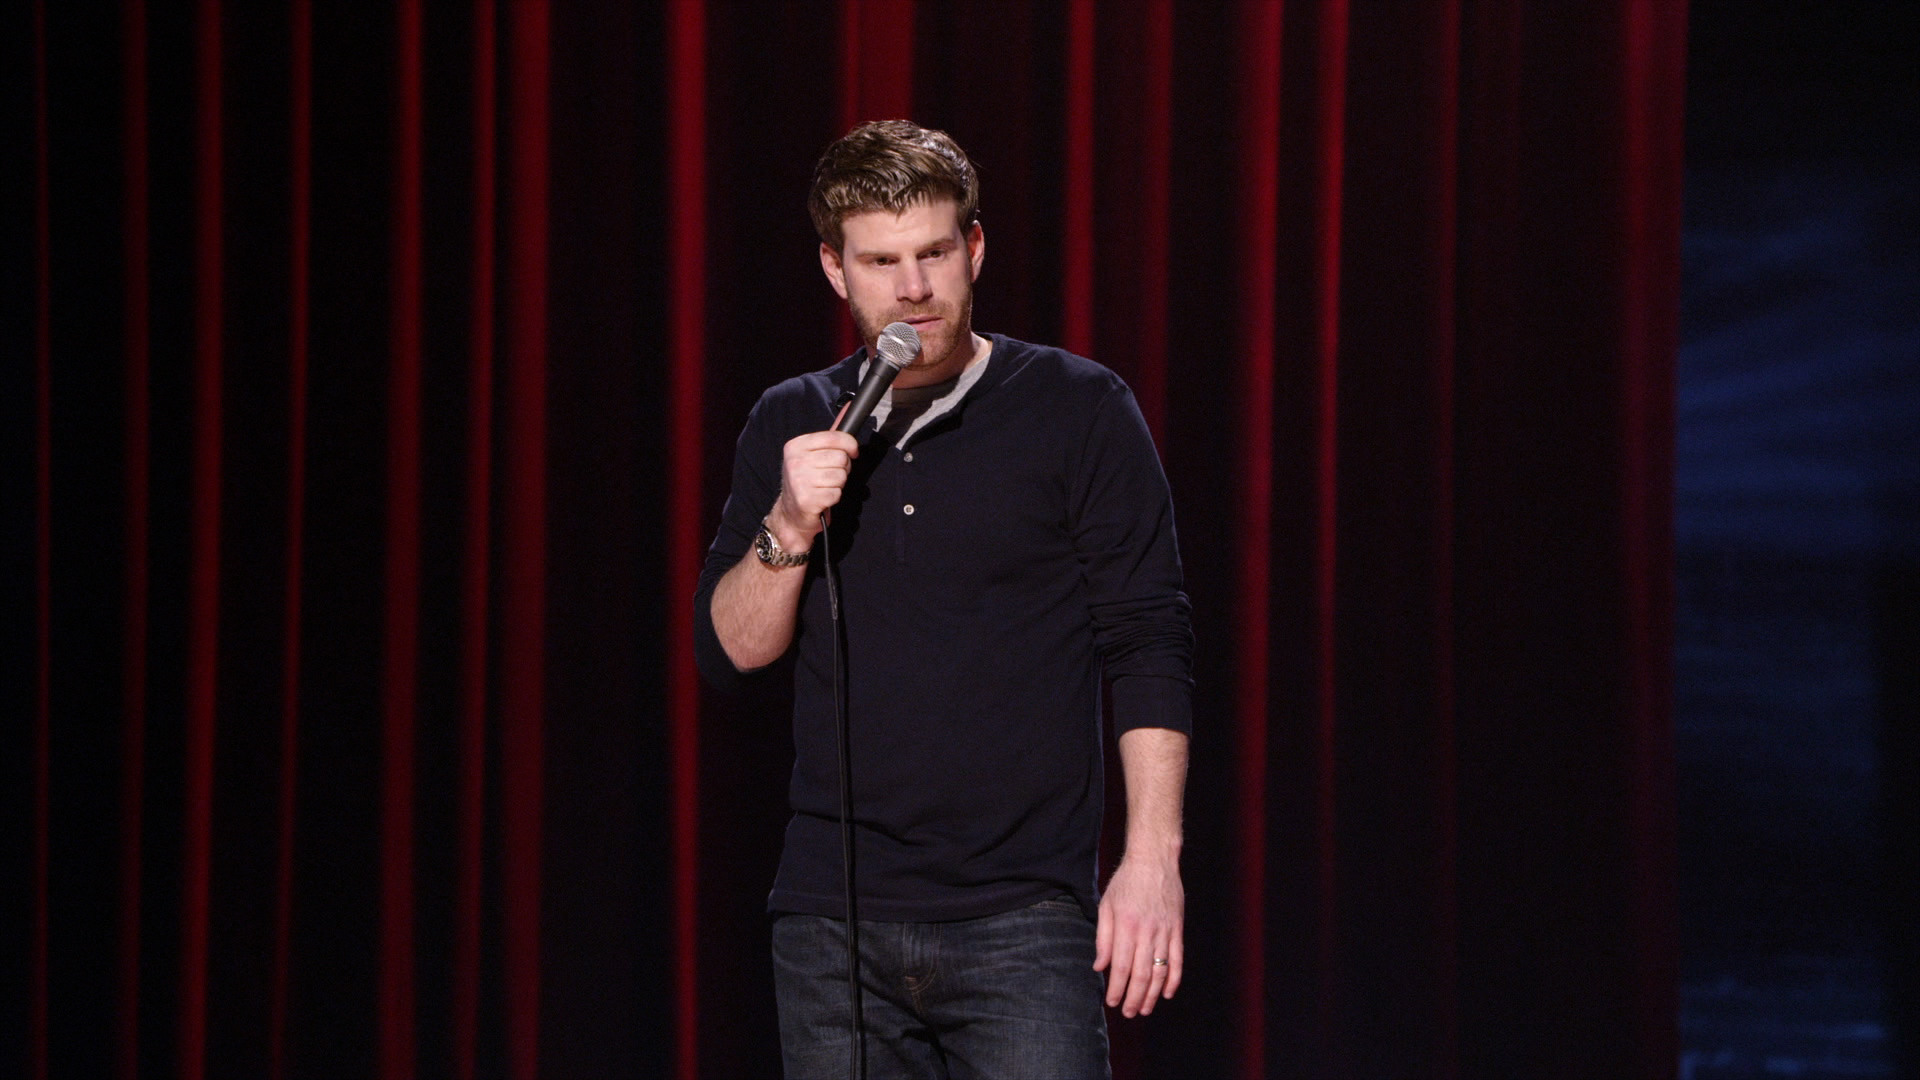 Uncensored - Steve Rannazzisi - Trying Not to Get Caught